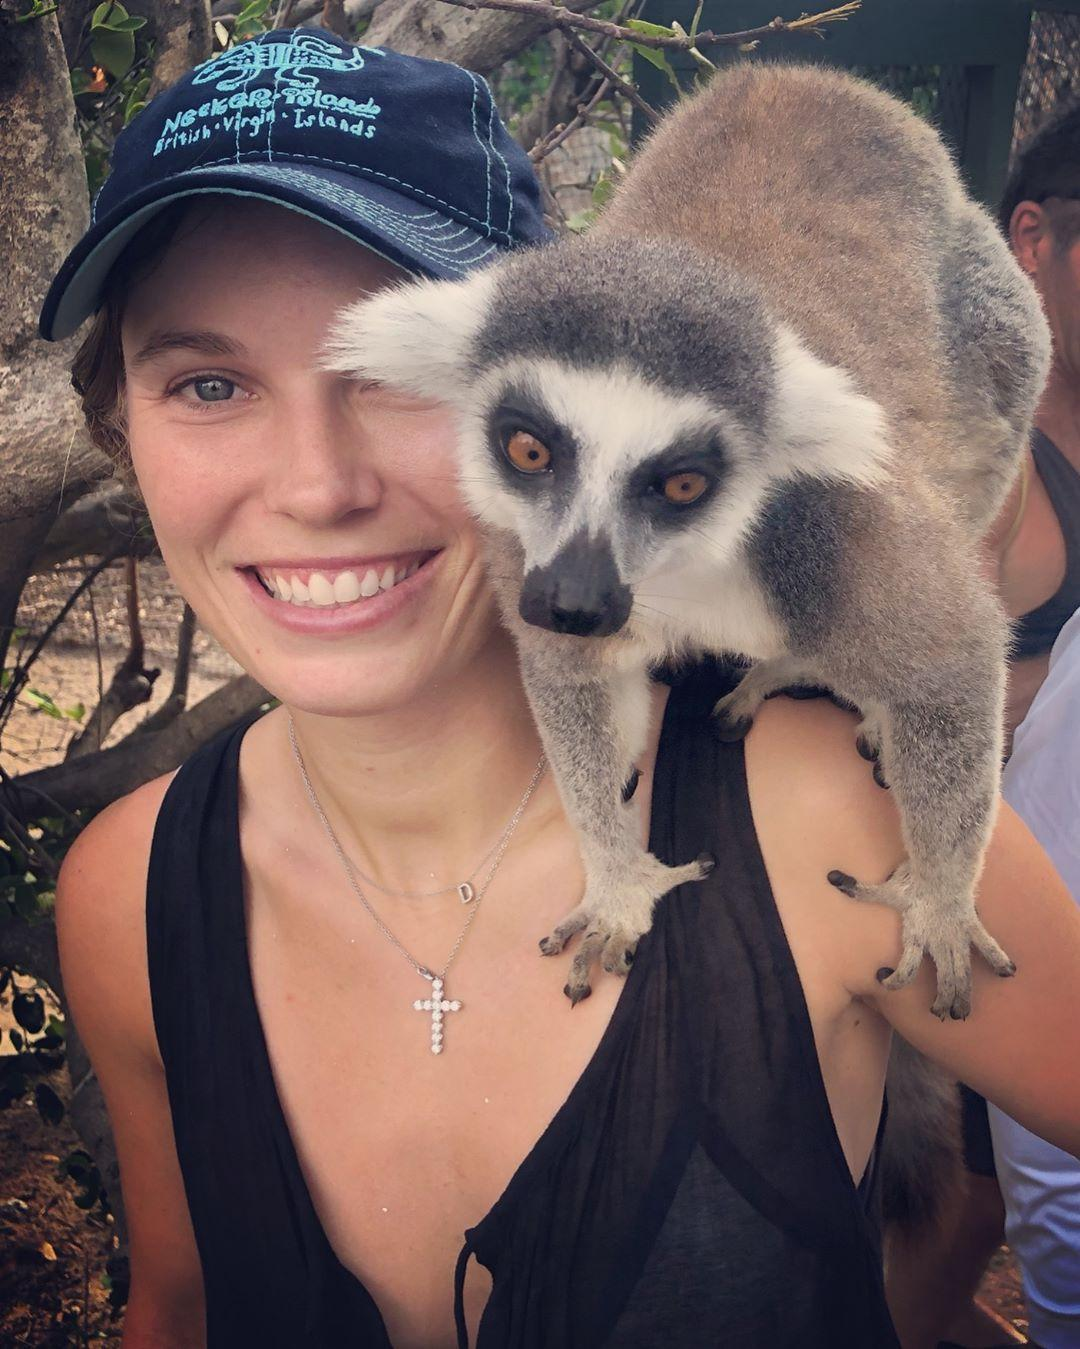 Caroline Wozniacki poses with a monkey while relaxing in the Caribbean